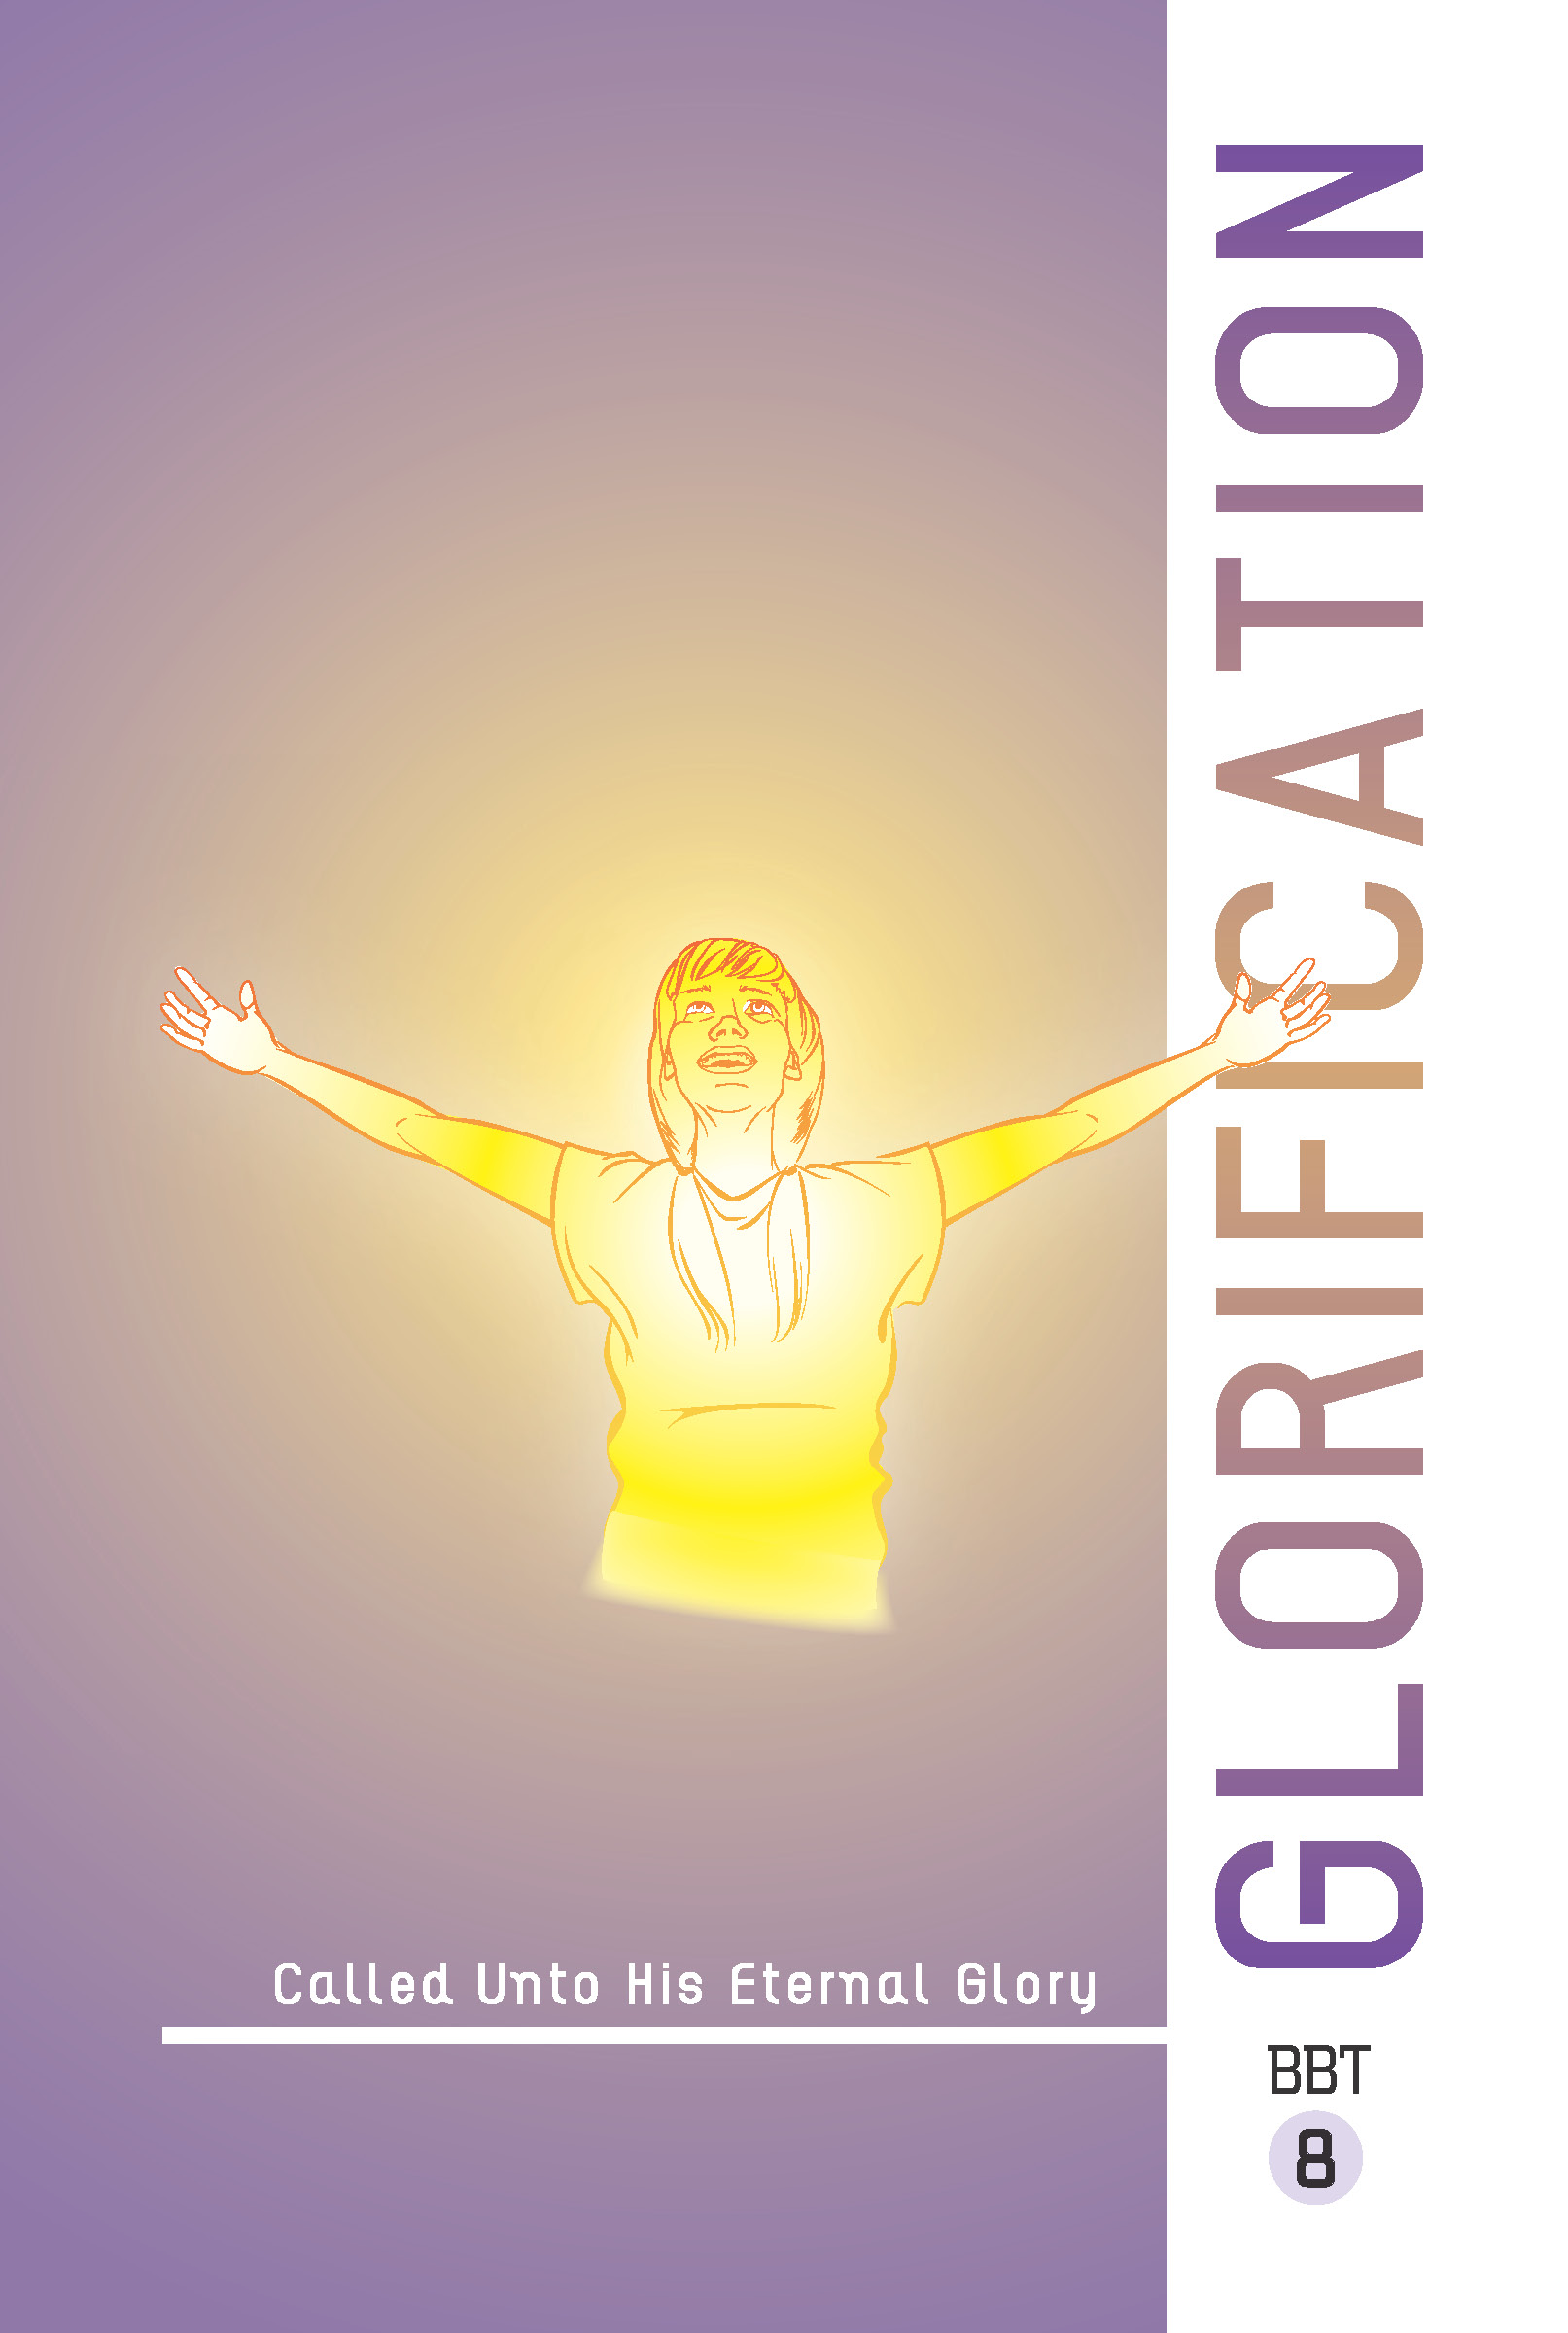 Lesson 8 - GLORIFICATION: Called Unto His Eternal Glory